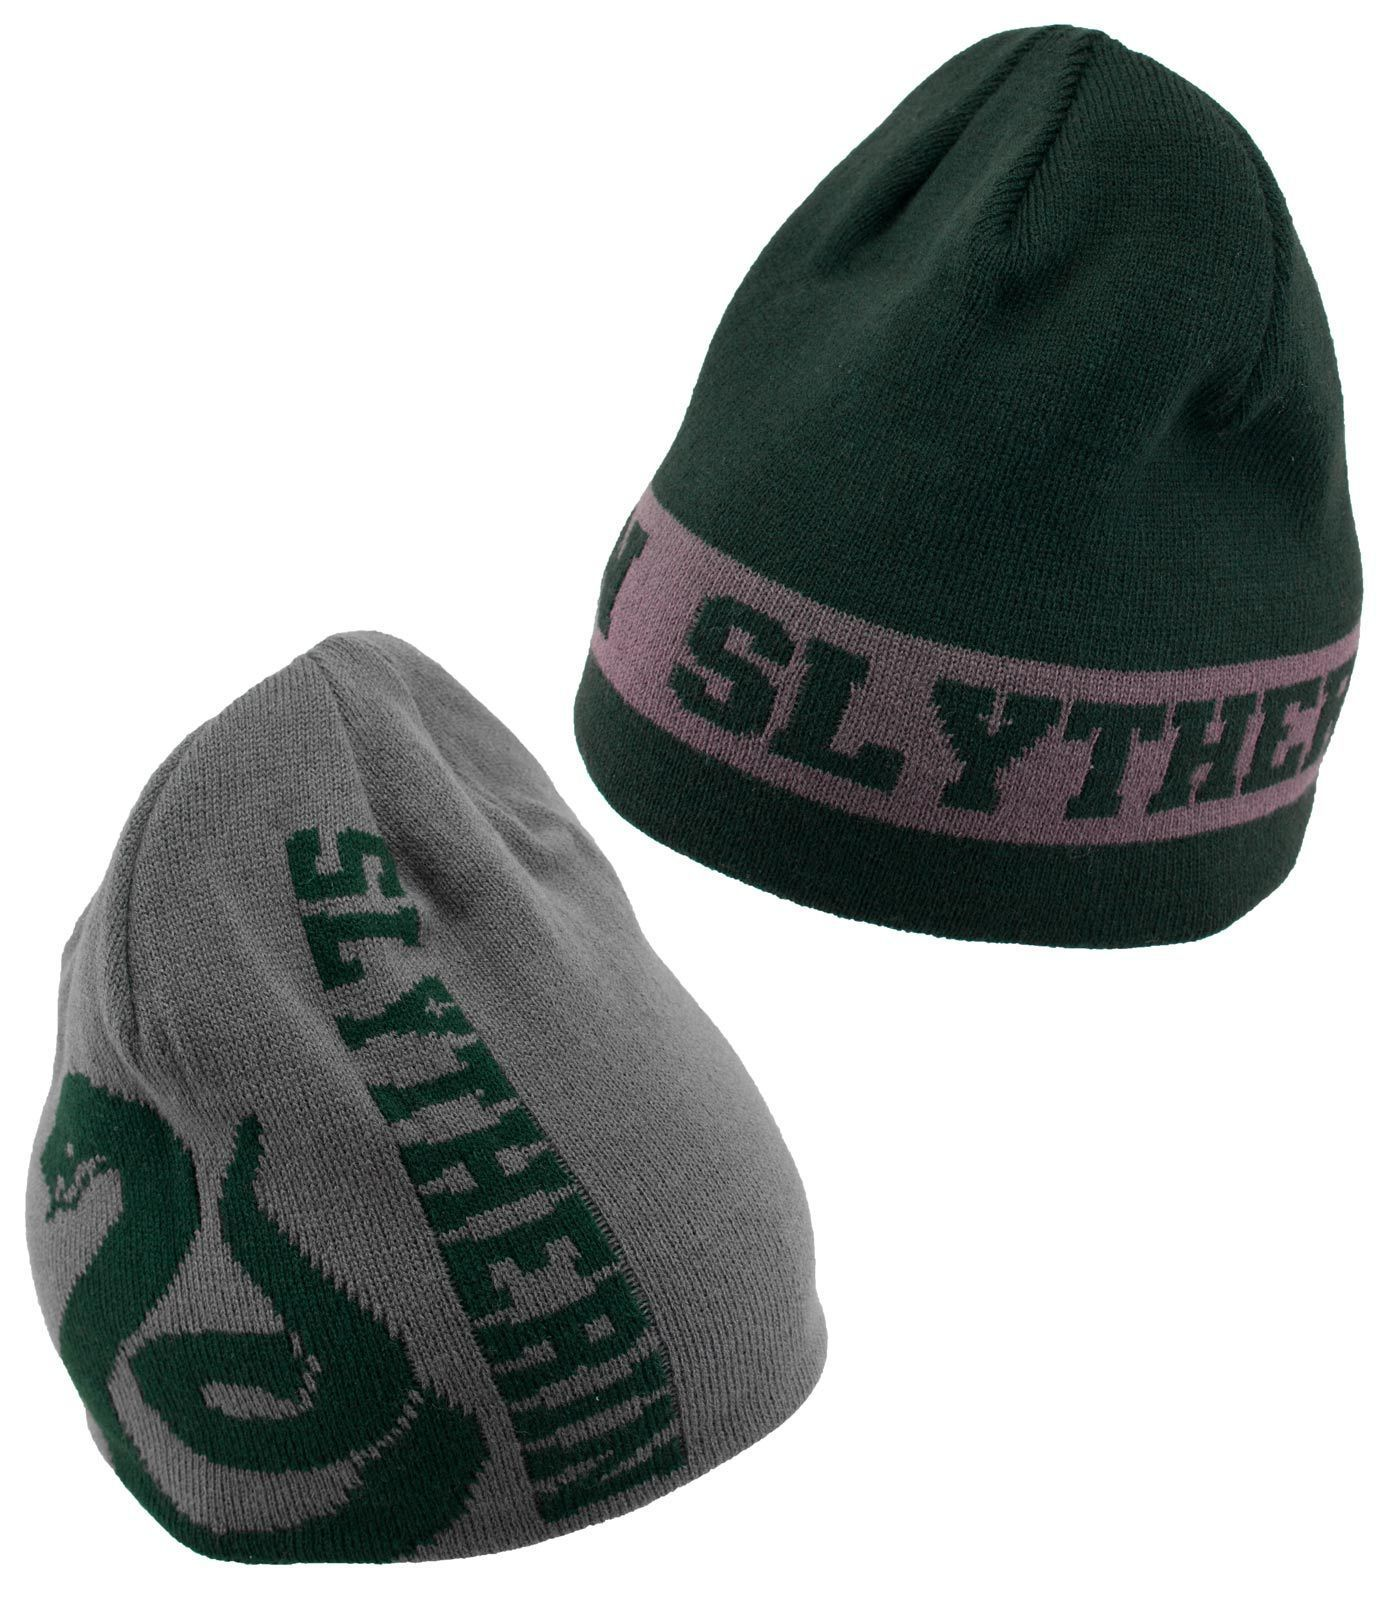 Harry Potter - Slytherin Reversible Knit Beanie image